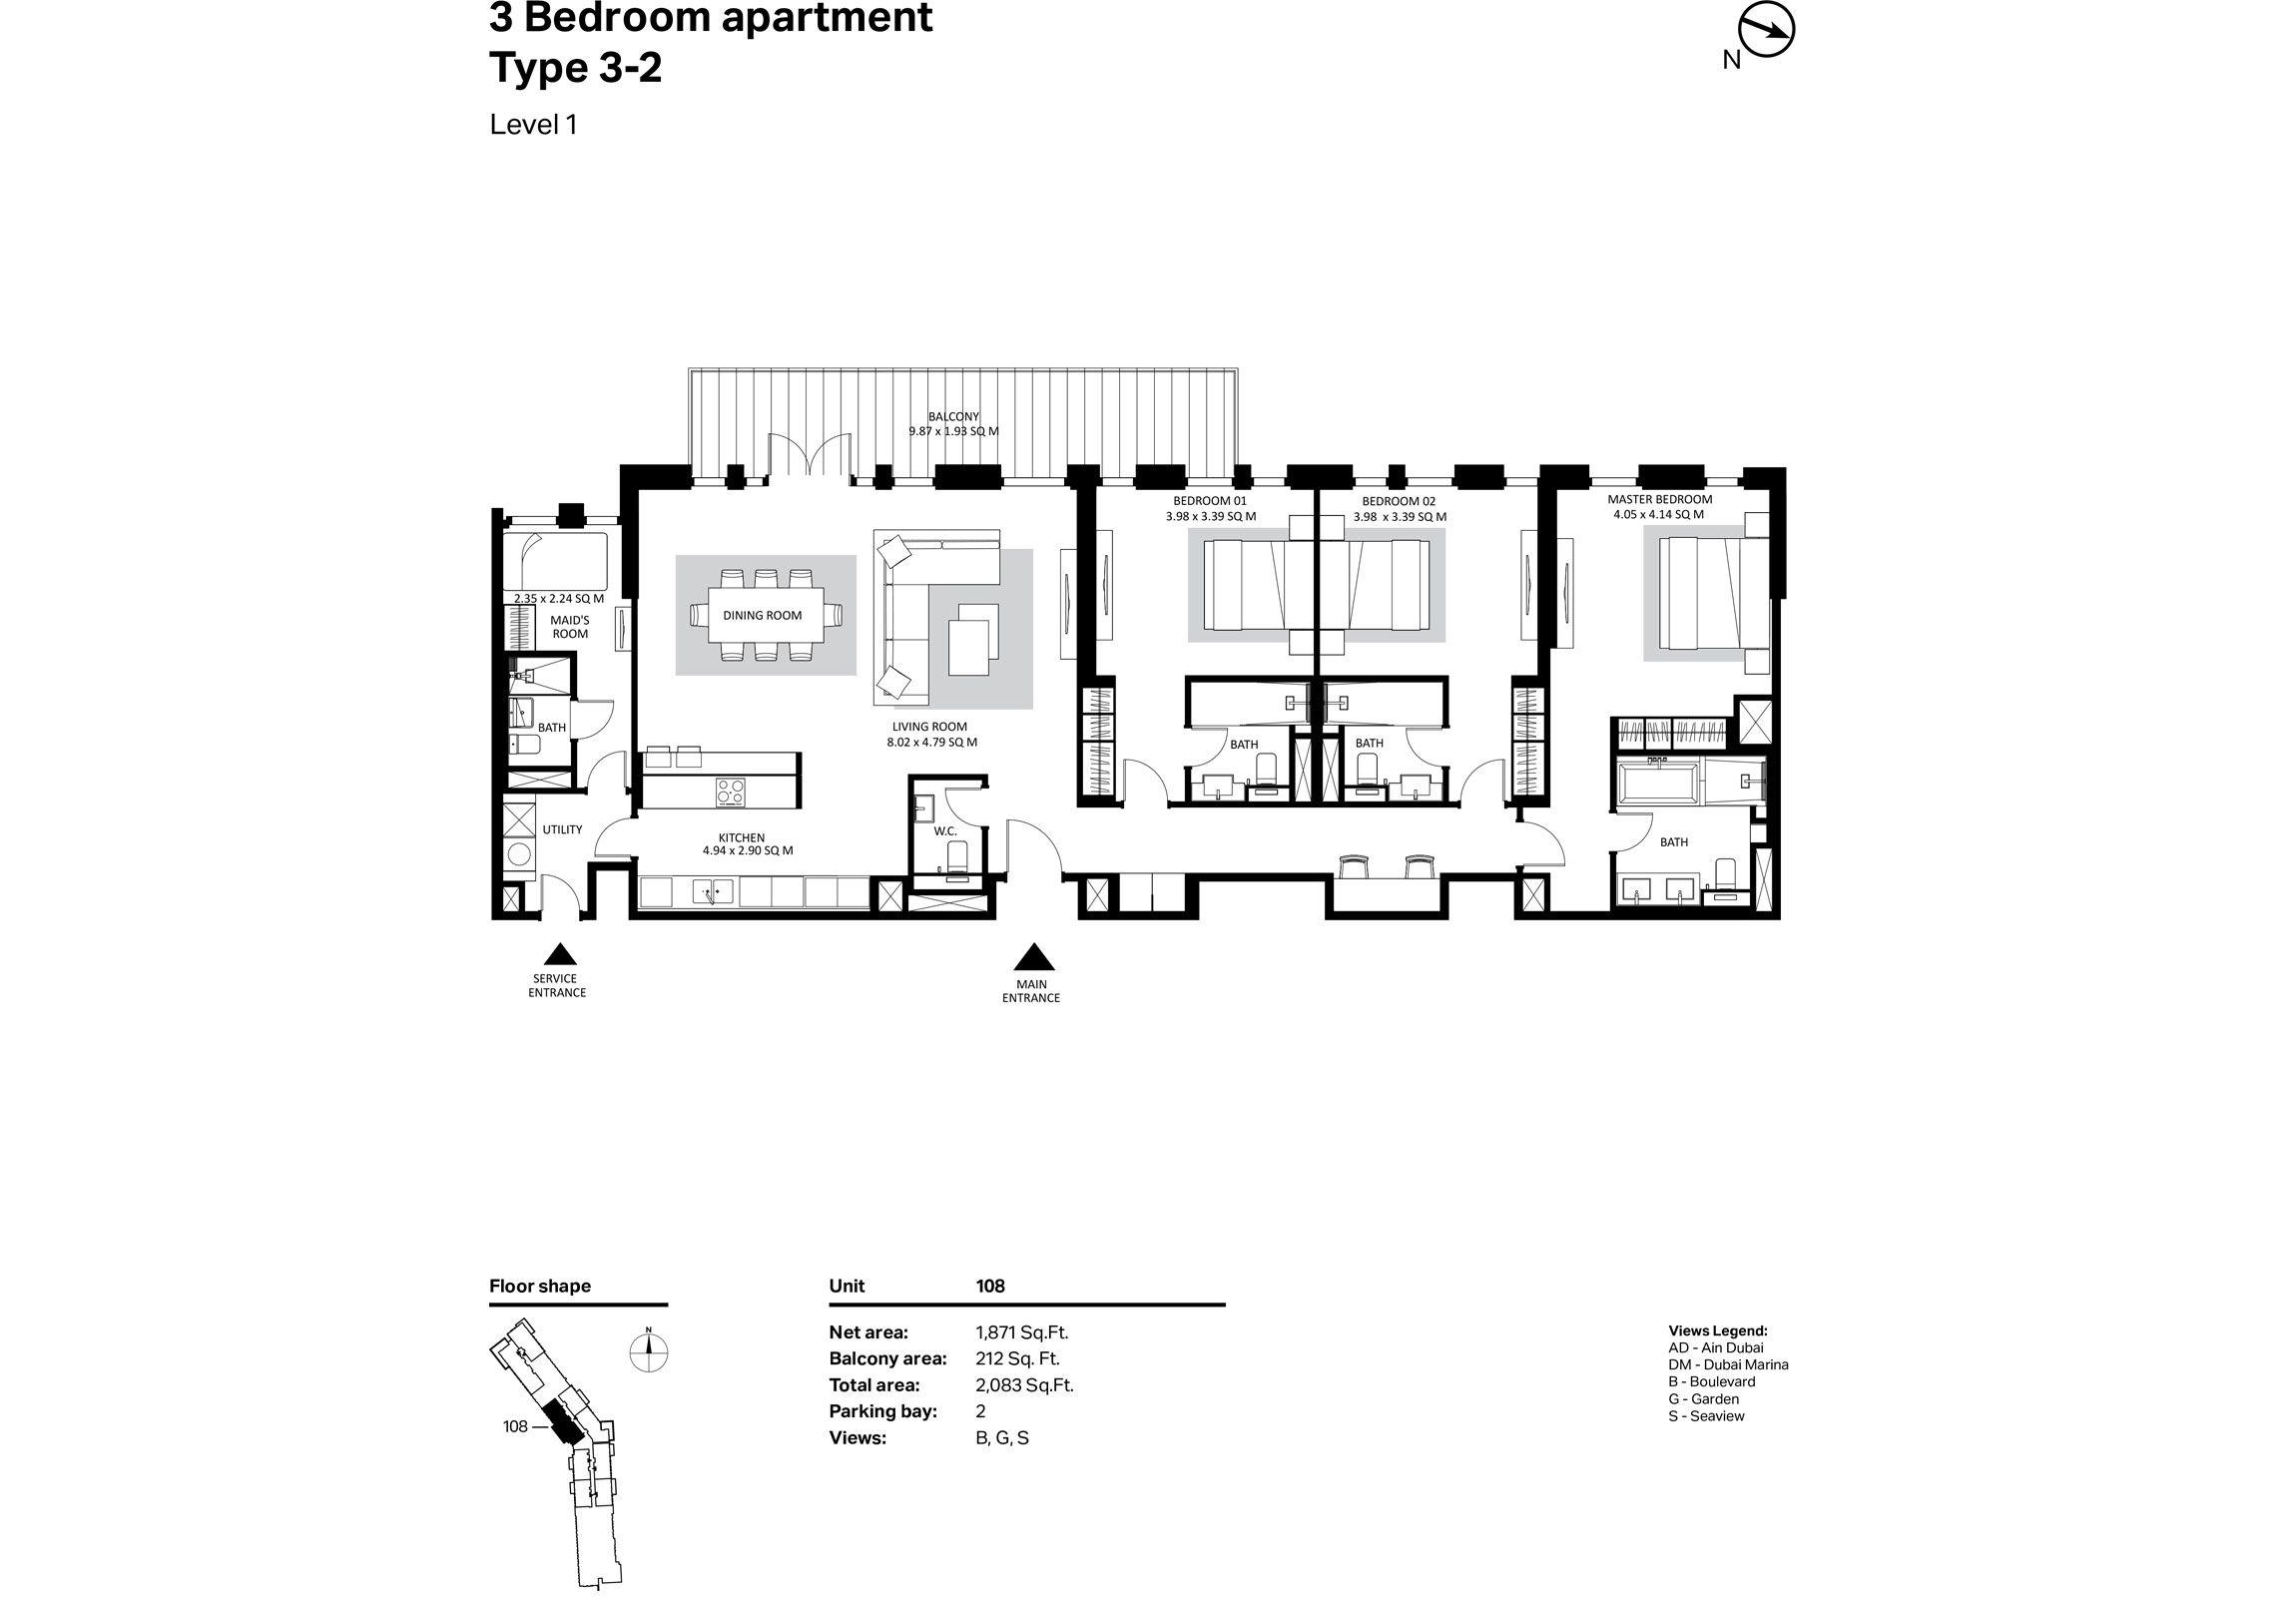 Building 2 - 3 Bedroom Type 3-2 Level 1 Size 2083    sq. ft.